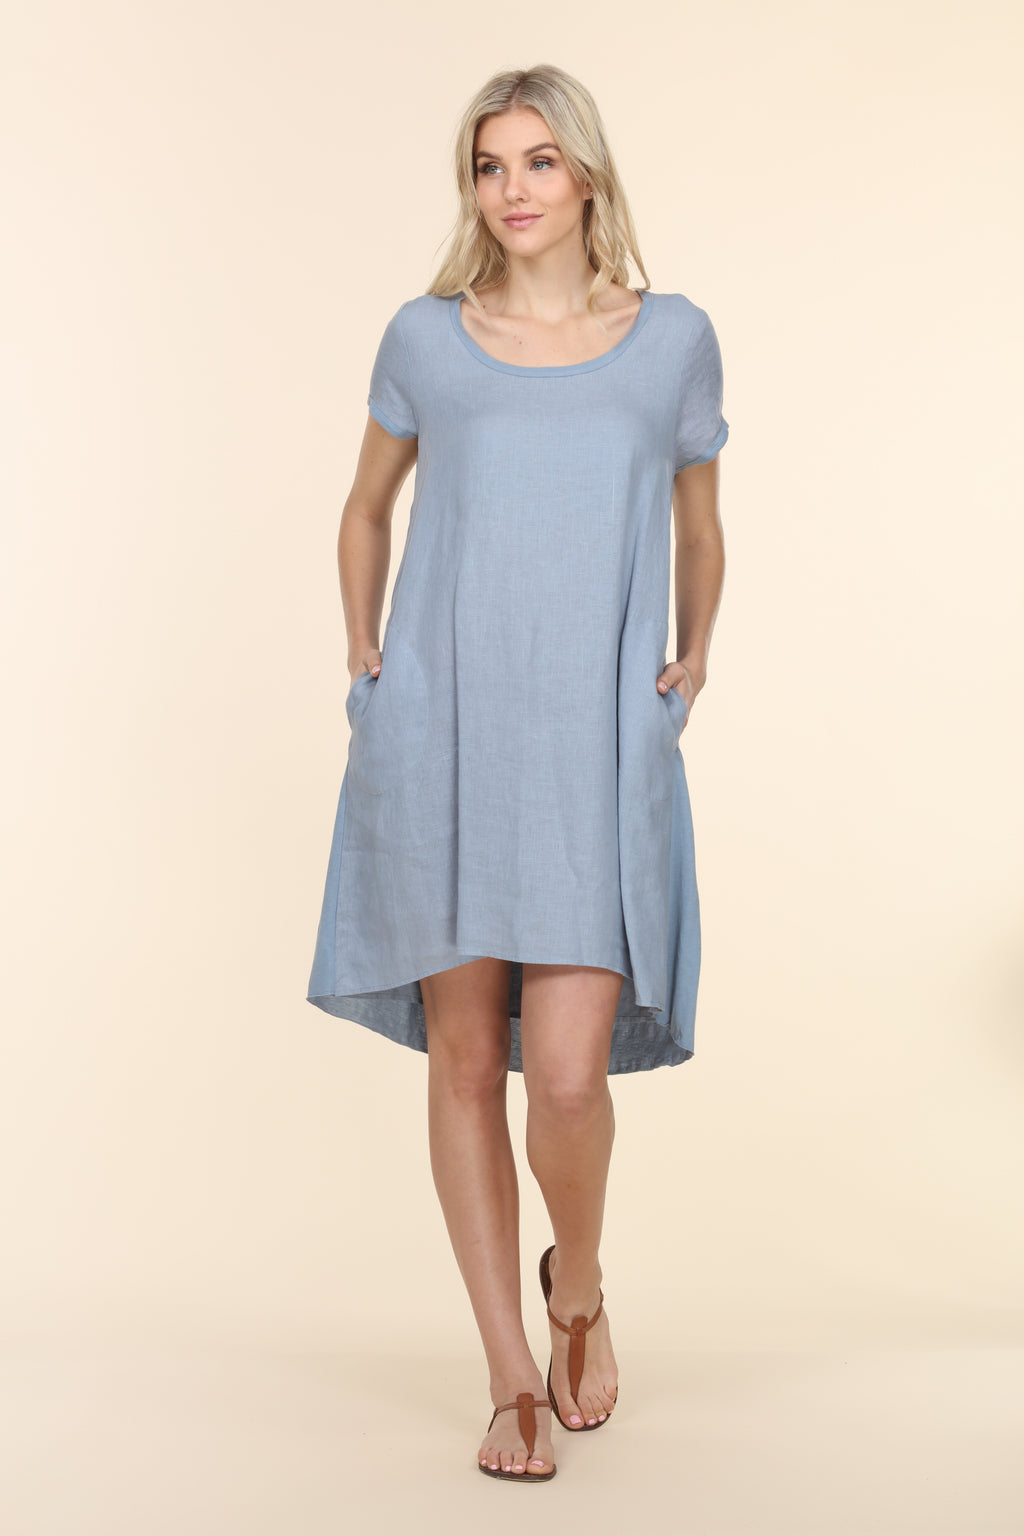 Scoop Mini Dress - Stone